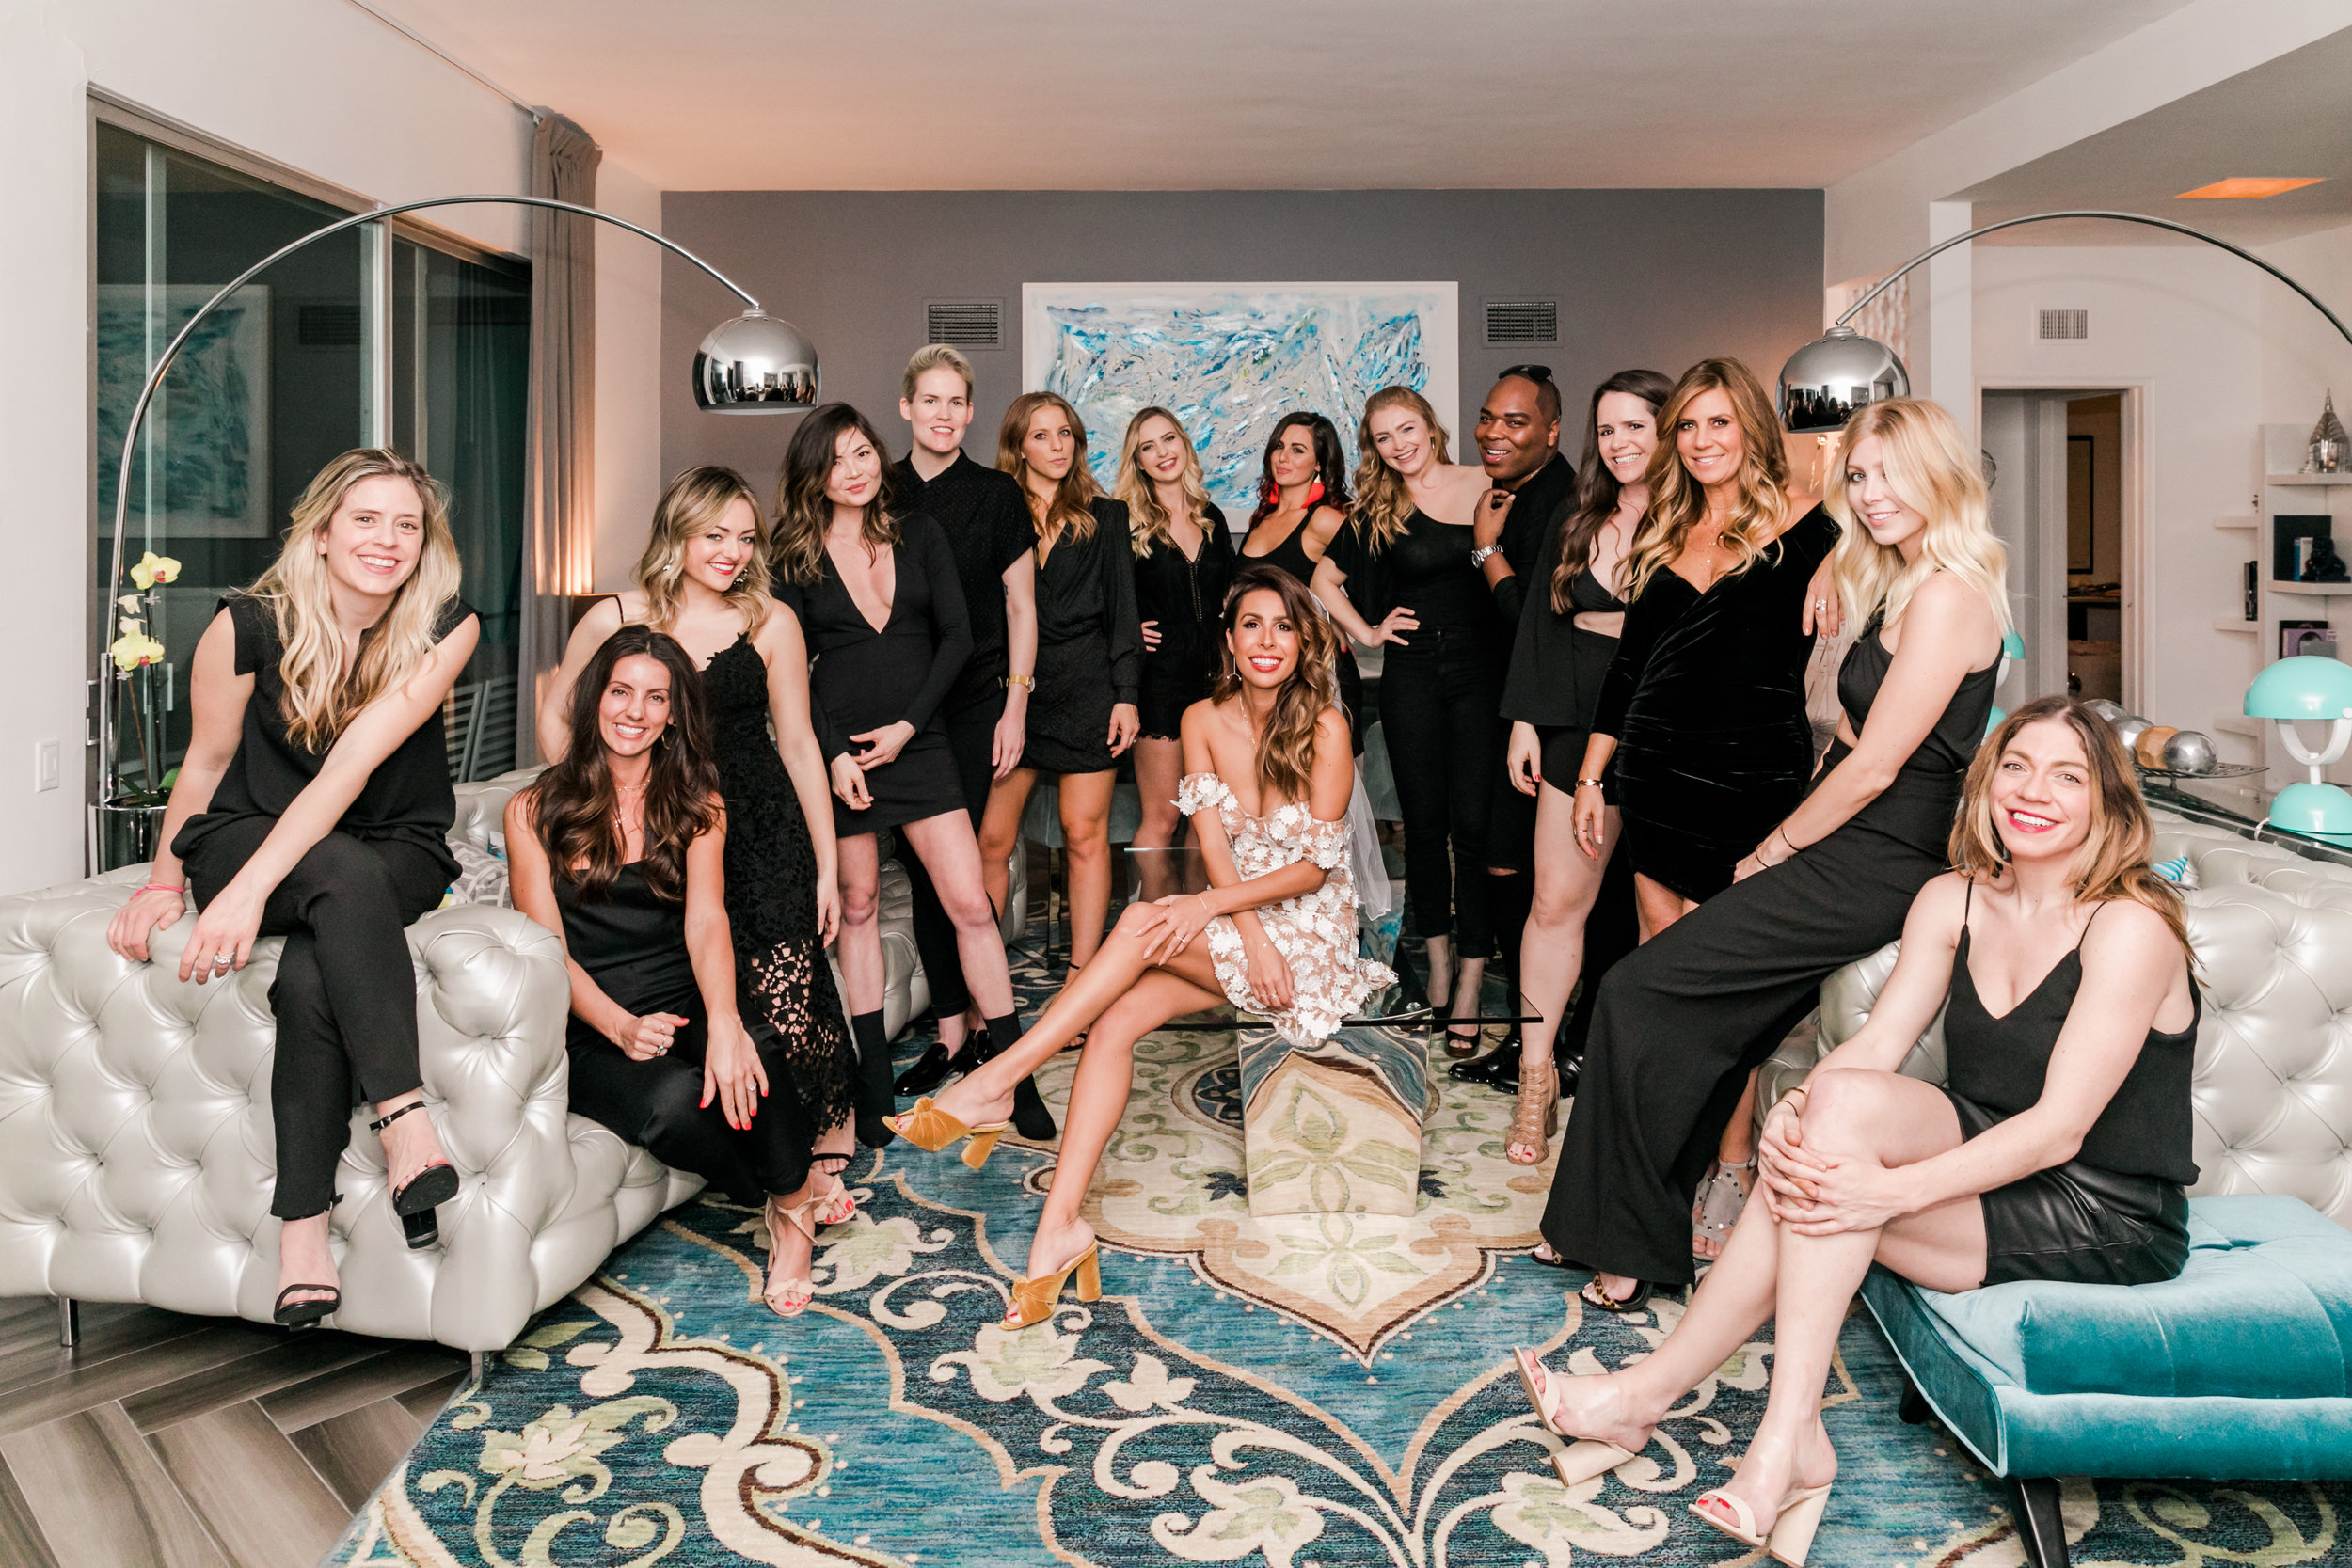 Bachelorette Party Ideas: all black outfits + bride in white - Everyday Pursuits   Palm Springs Bachelorette Party